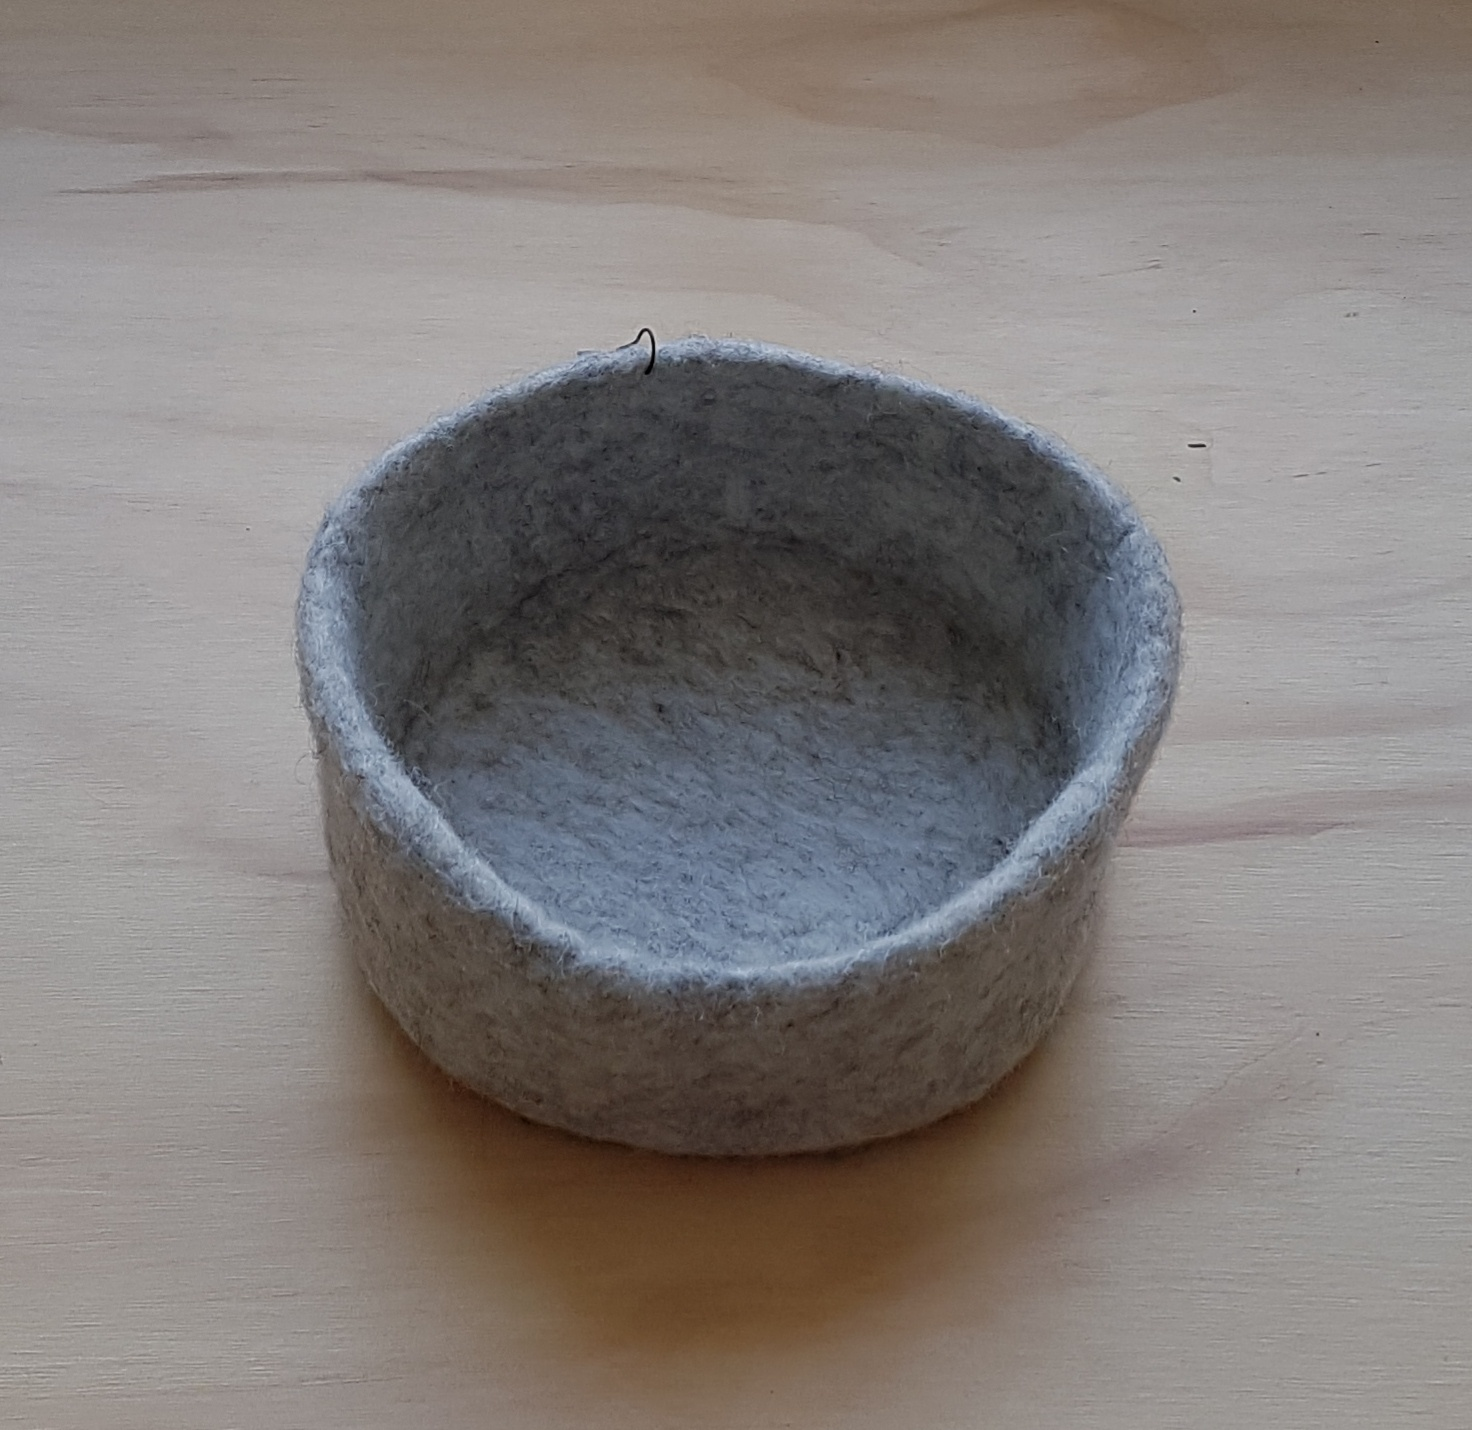 SMALL FELT BOWL - GREY MARLE